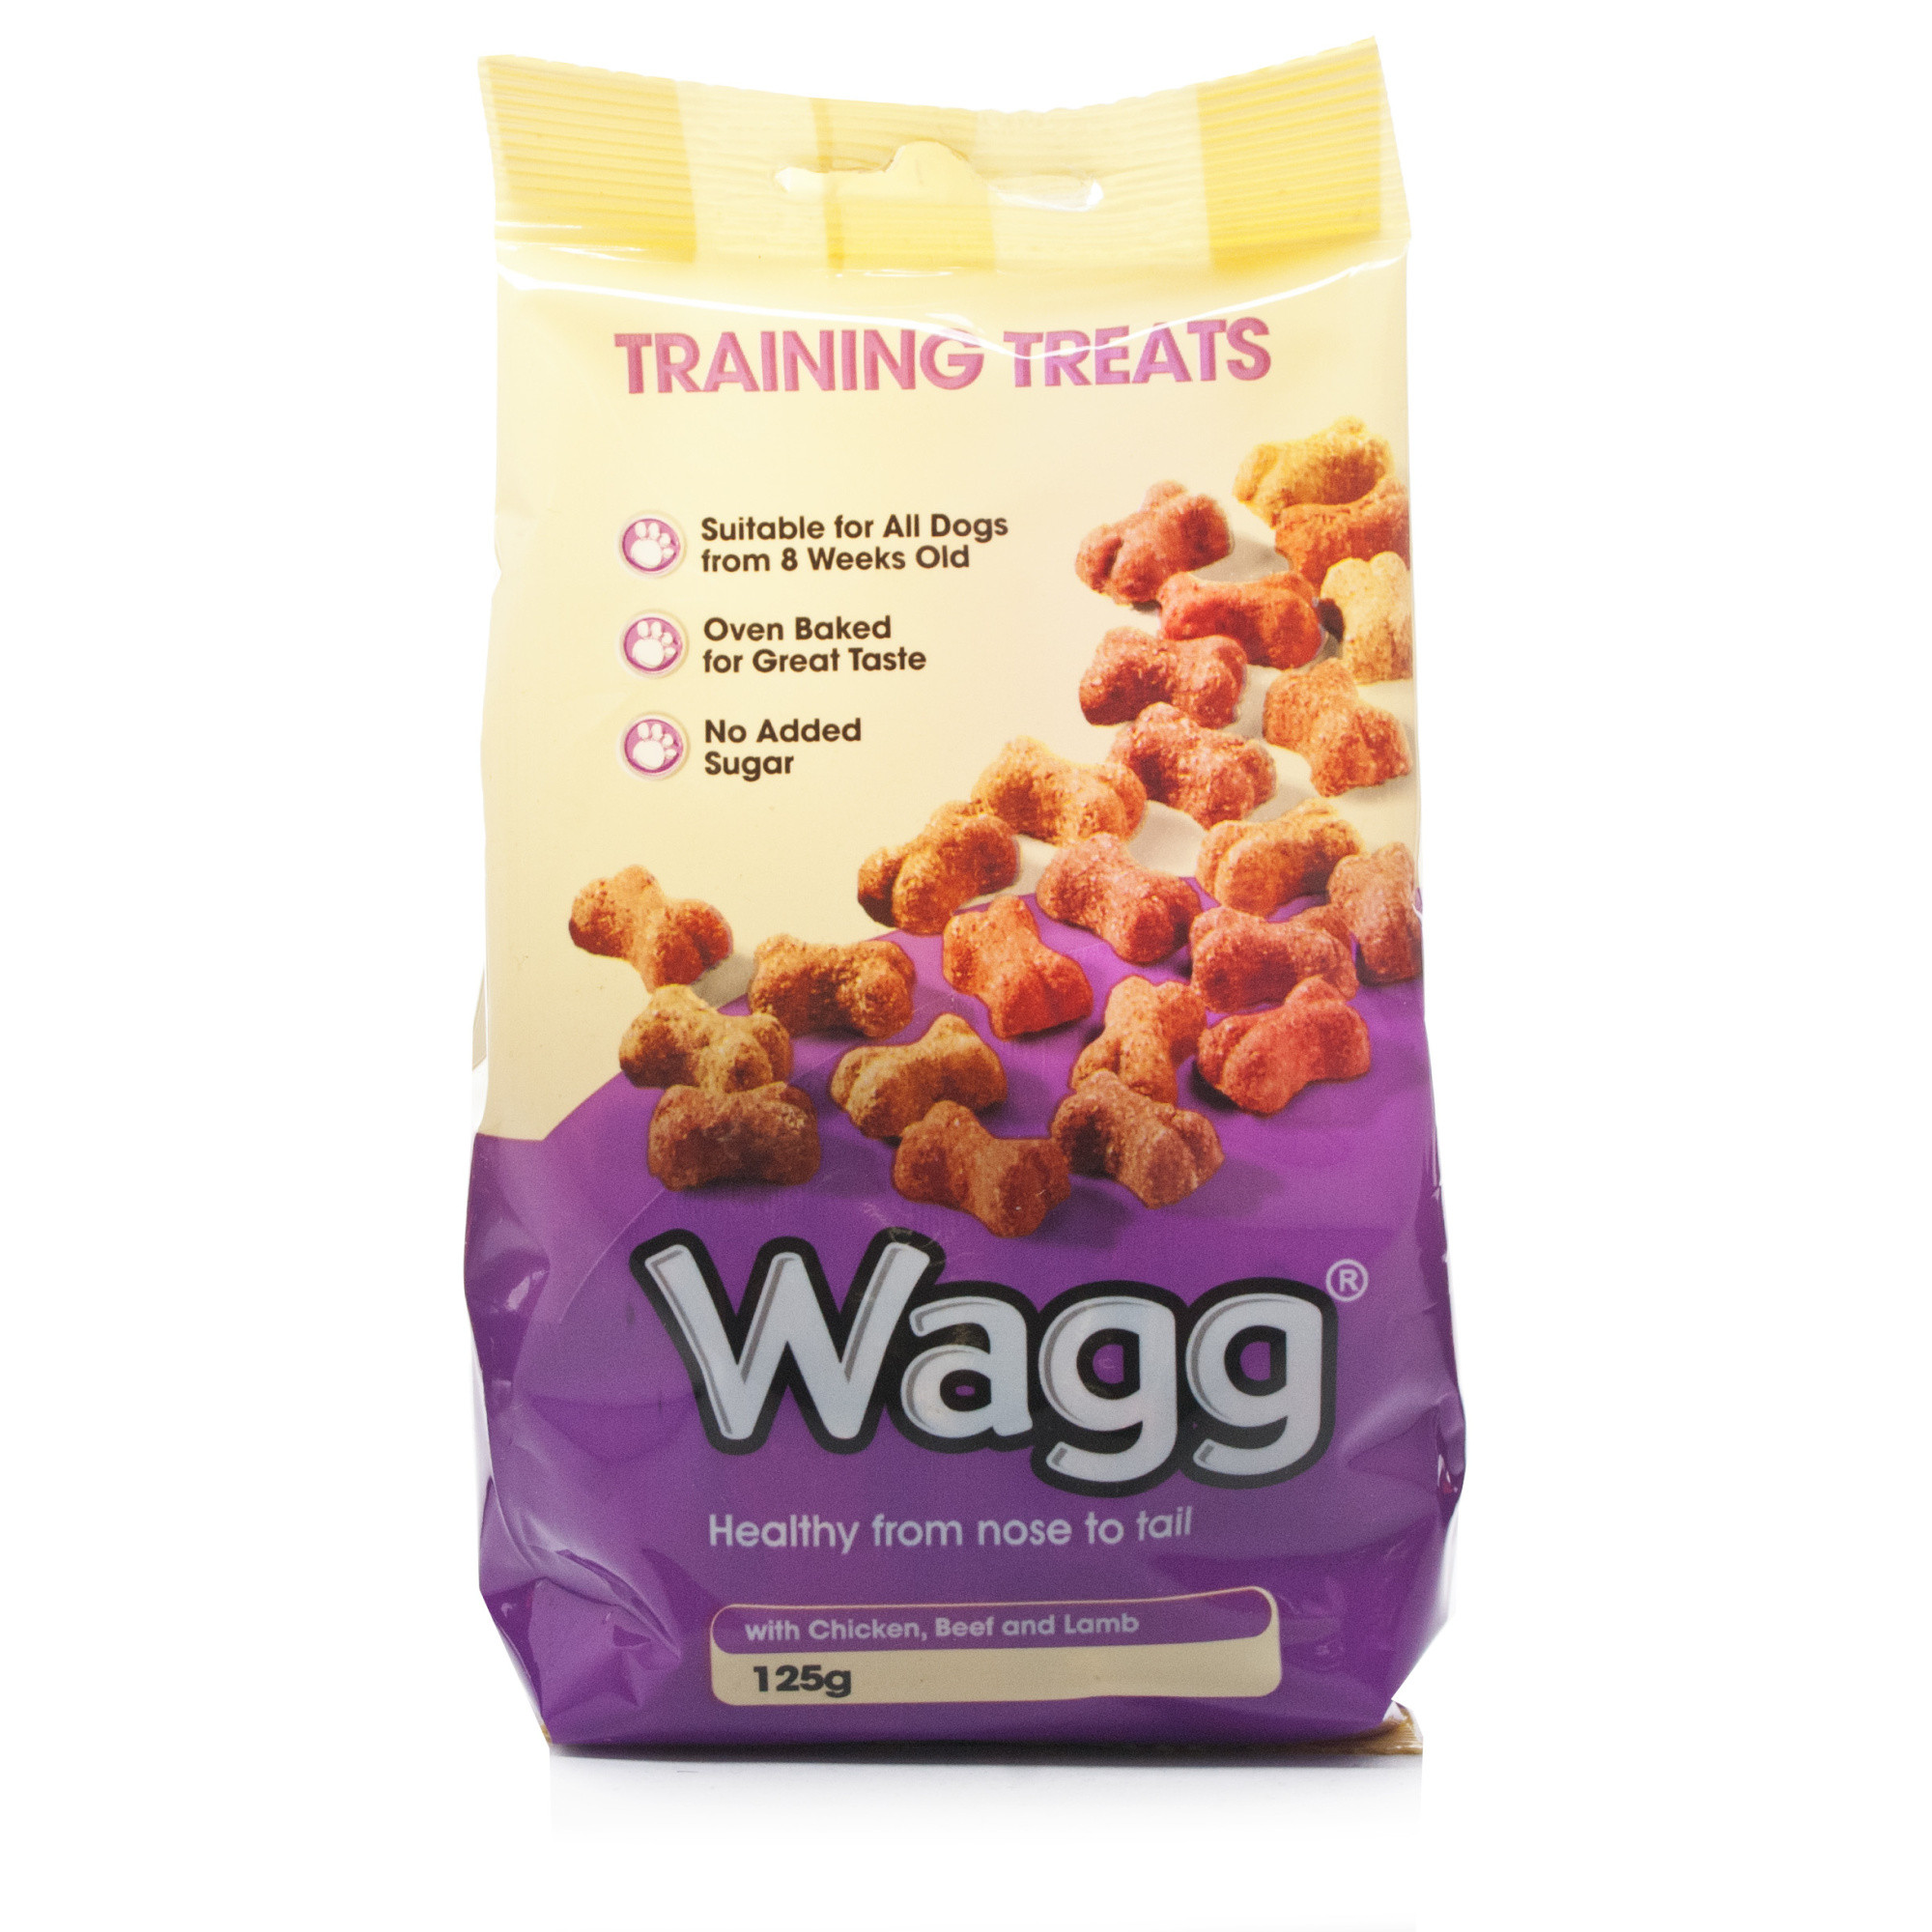 Wagg Training Treats